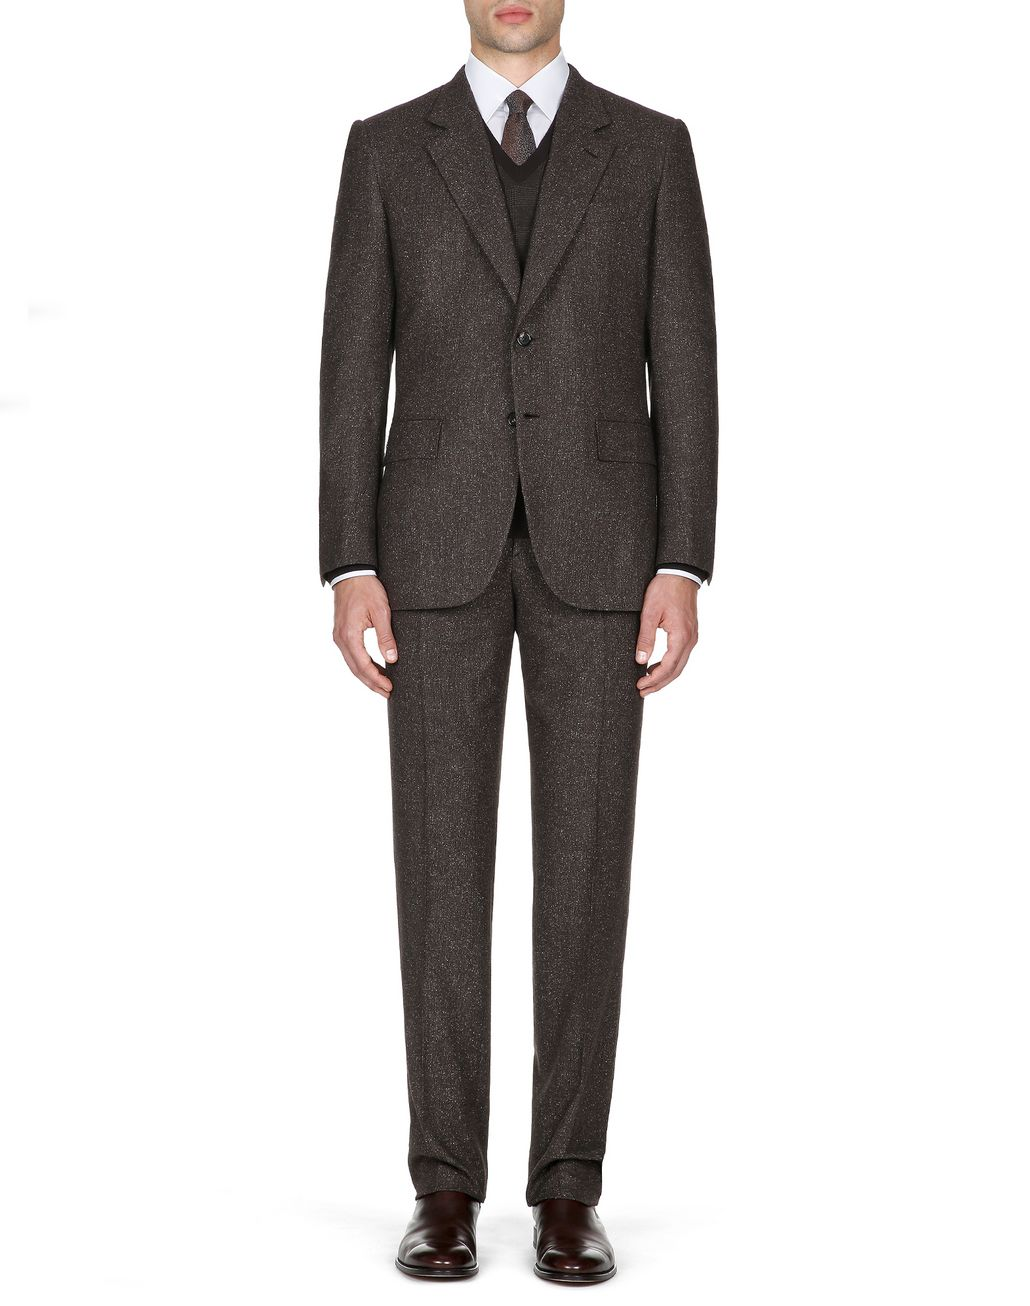 BRIONI Abito Parioli Marrone Scuro   Suits & Jackets Uomo r